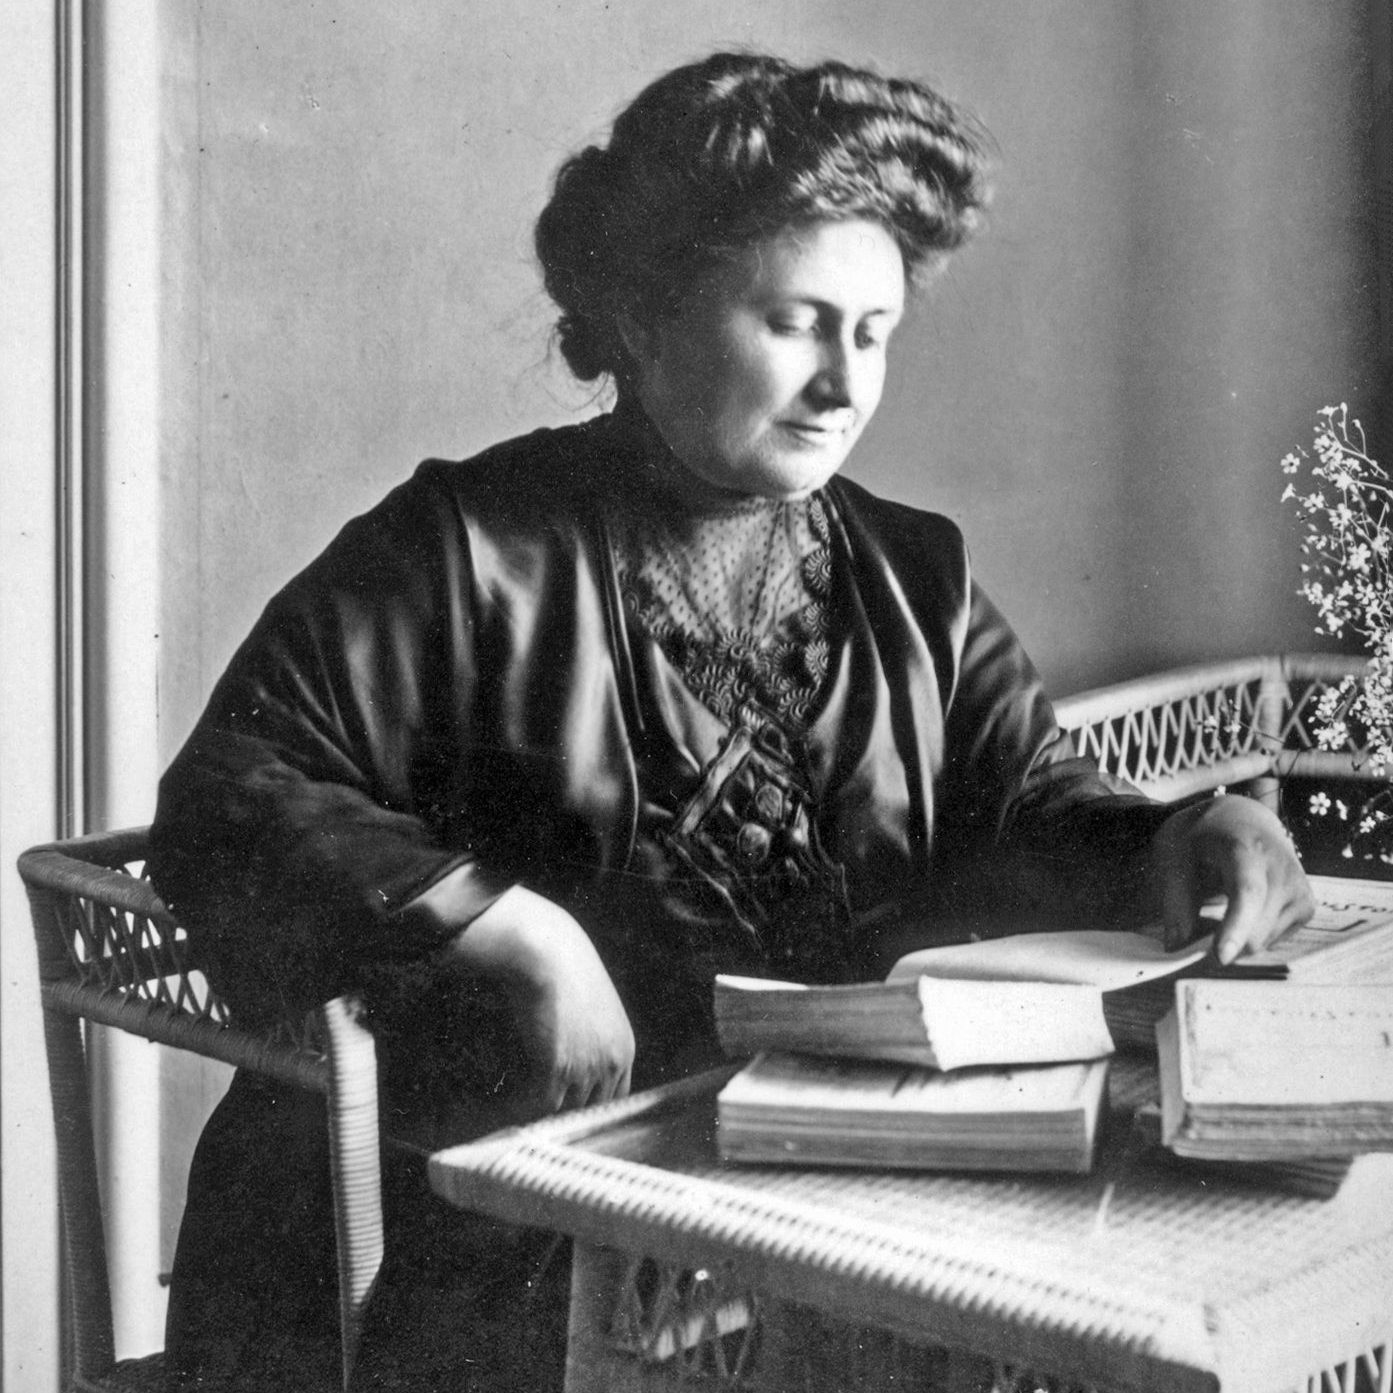 a description of maria montessori born in the village of charaville italy Alternative education of the oldest and well know alternative education out there montessori schools were started by dr maria montessori, she was born in chiaravalle, italy in 1870.